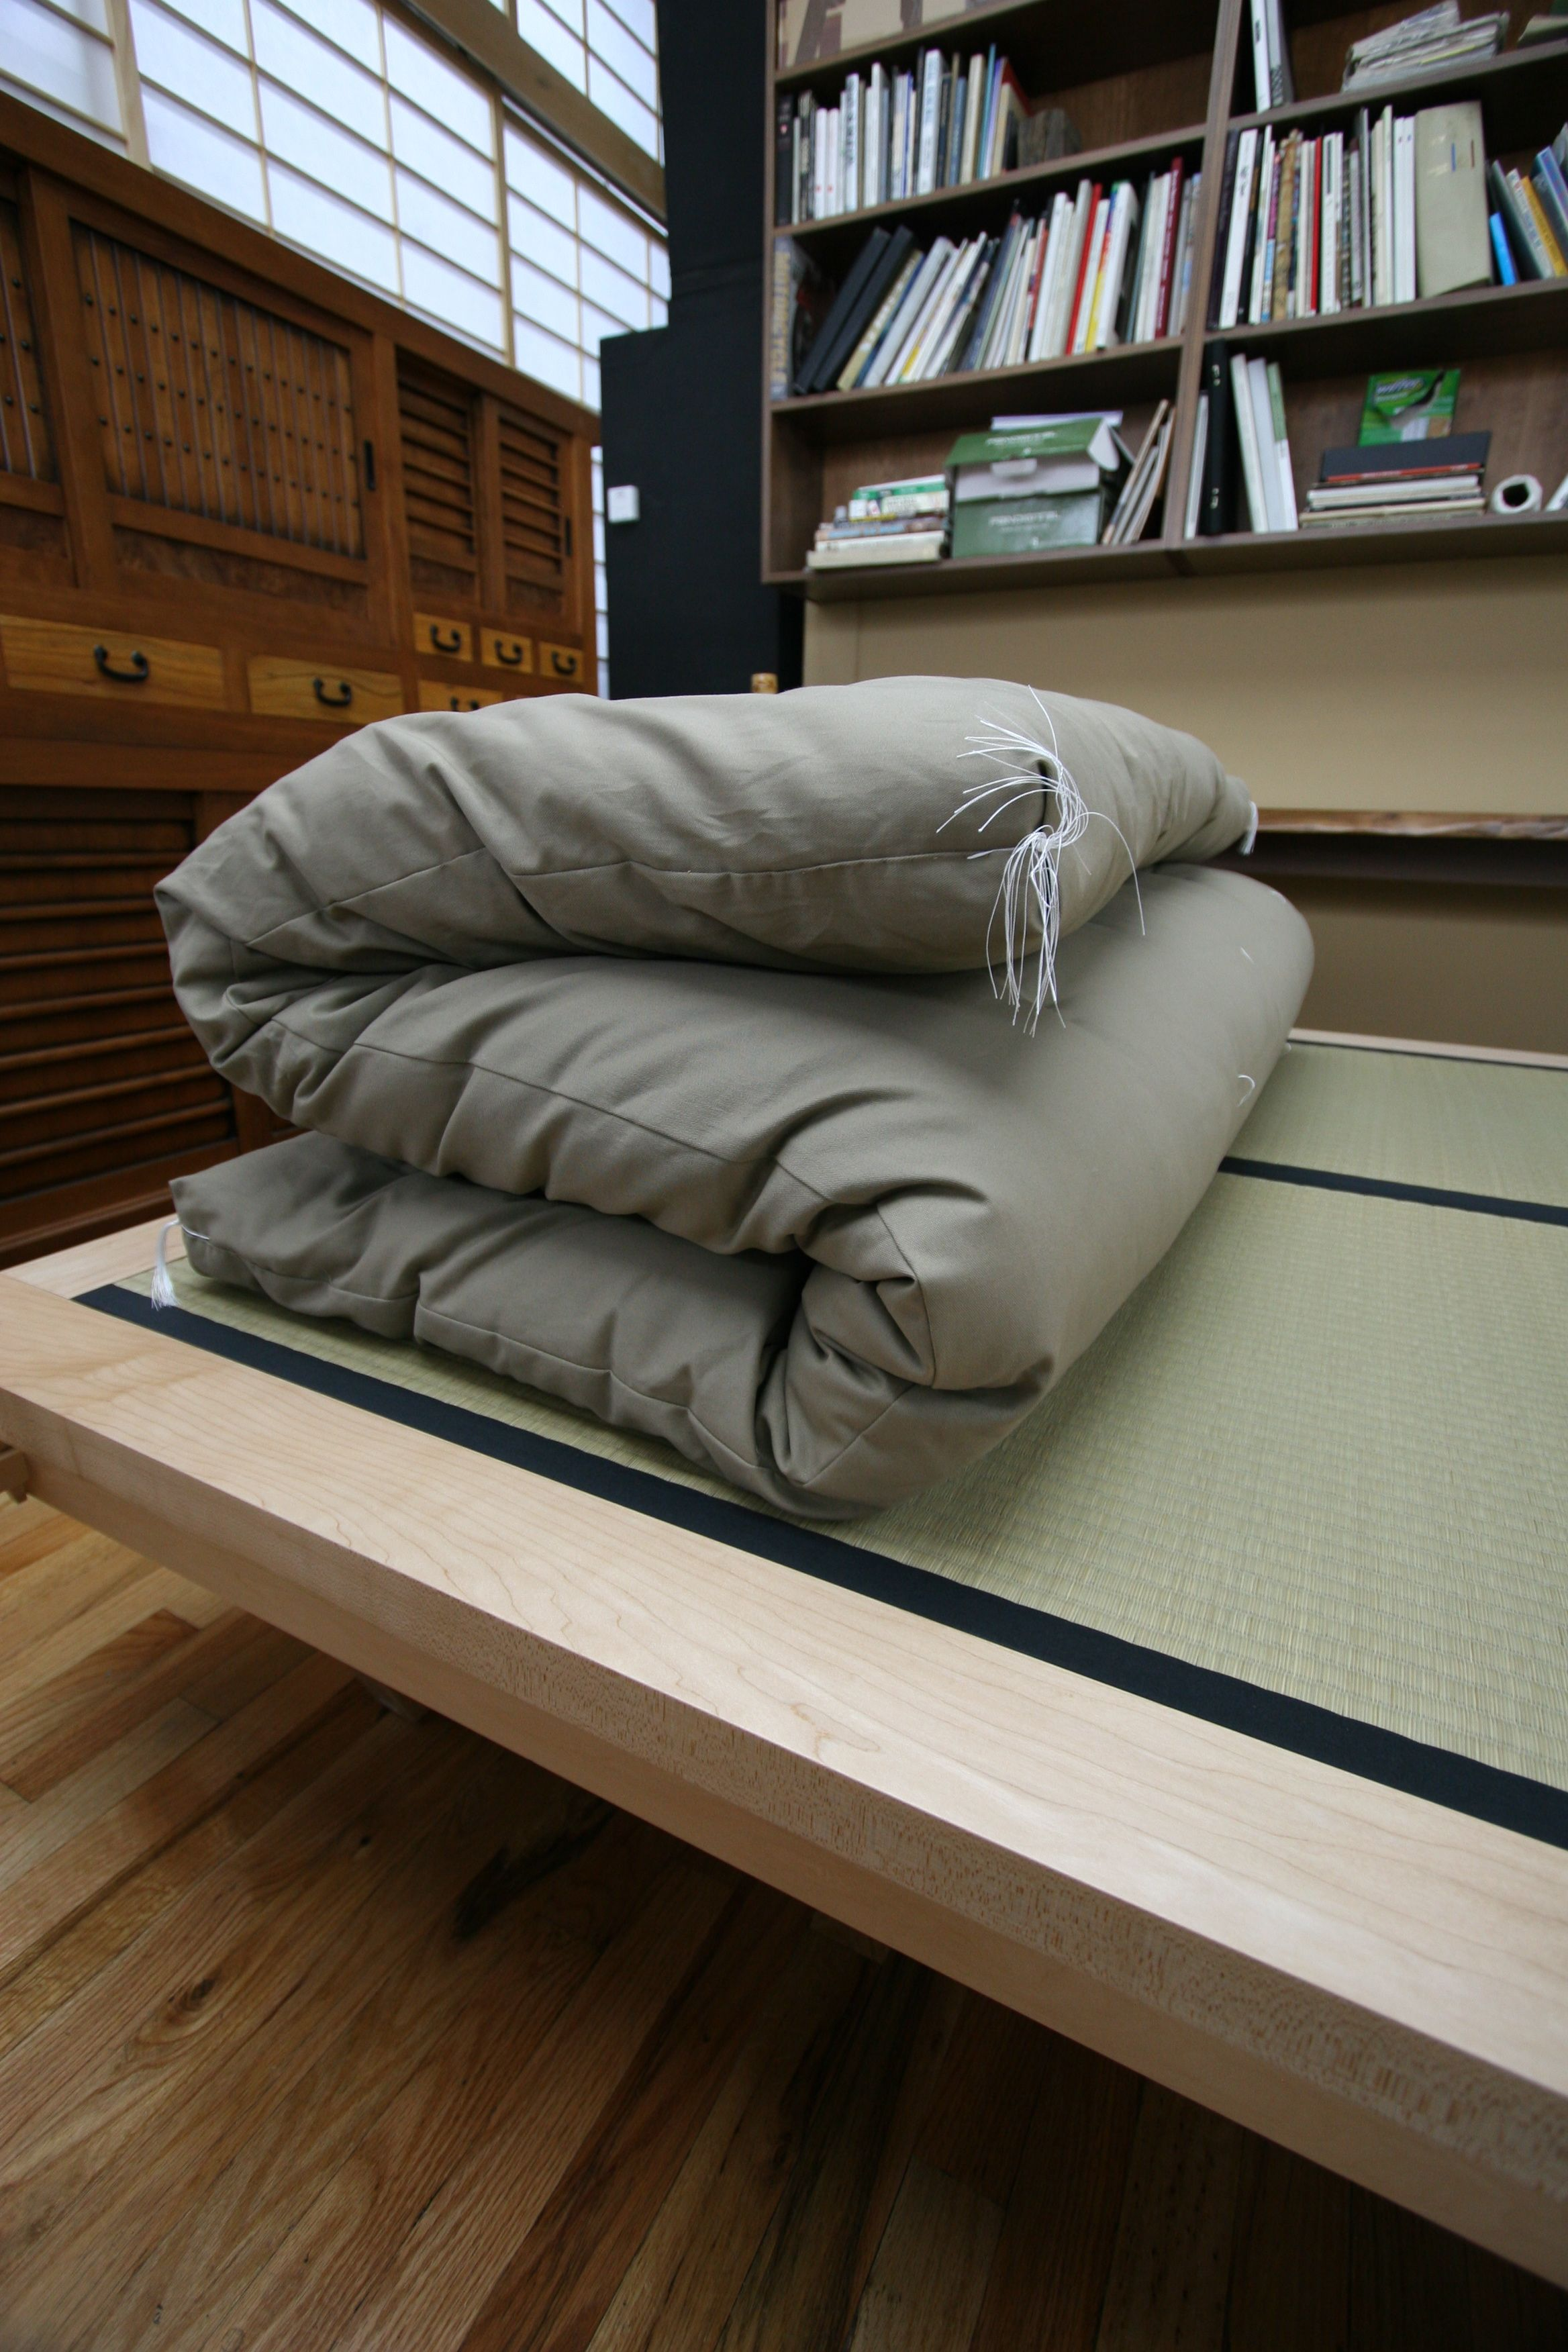 Japanese Futon Sets Japanese Futon And Tatami An Alternative To Western Mattress